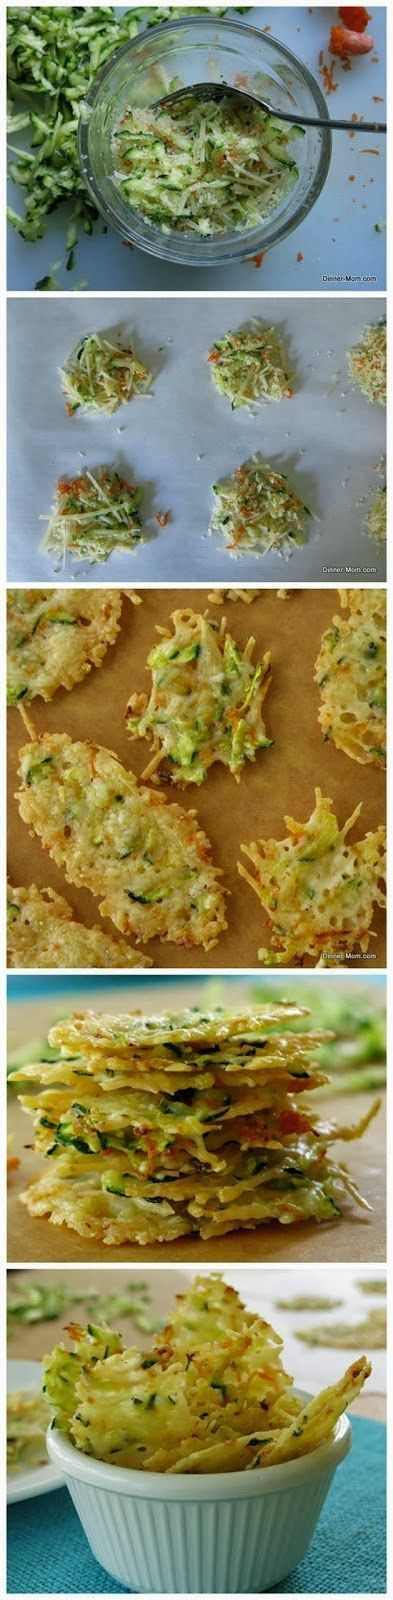 Parmesan Cheese Crisps laced with zucchini and carrot shreds - a low-carb, gluten-free snack recipe by DinnerMom